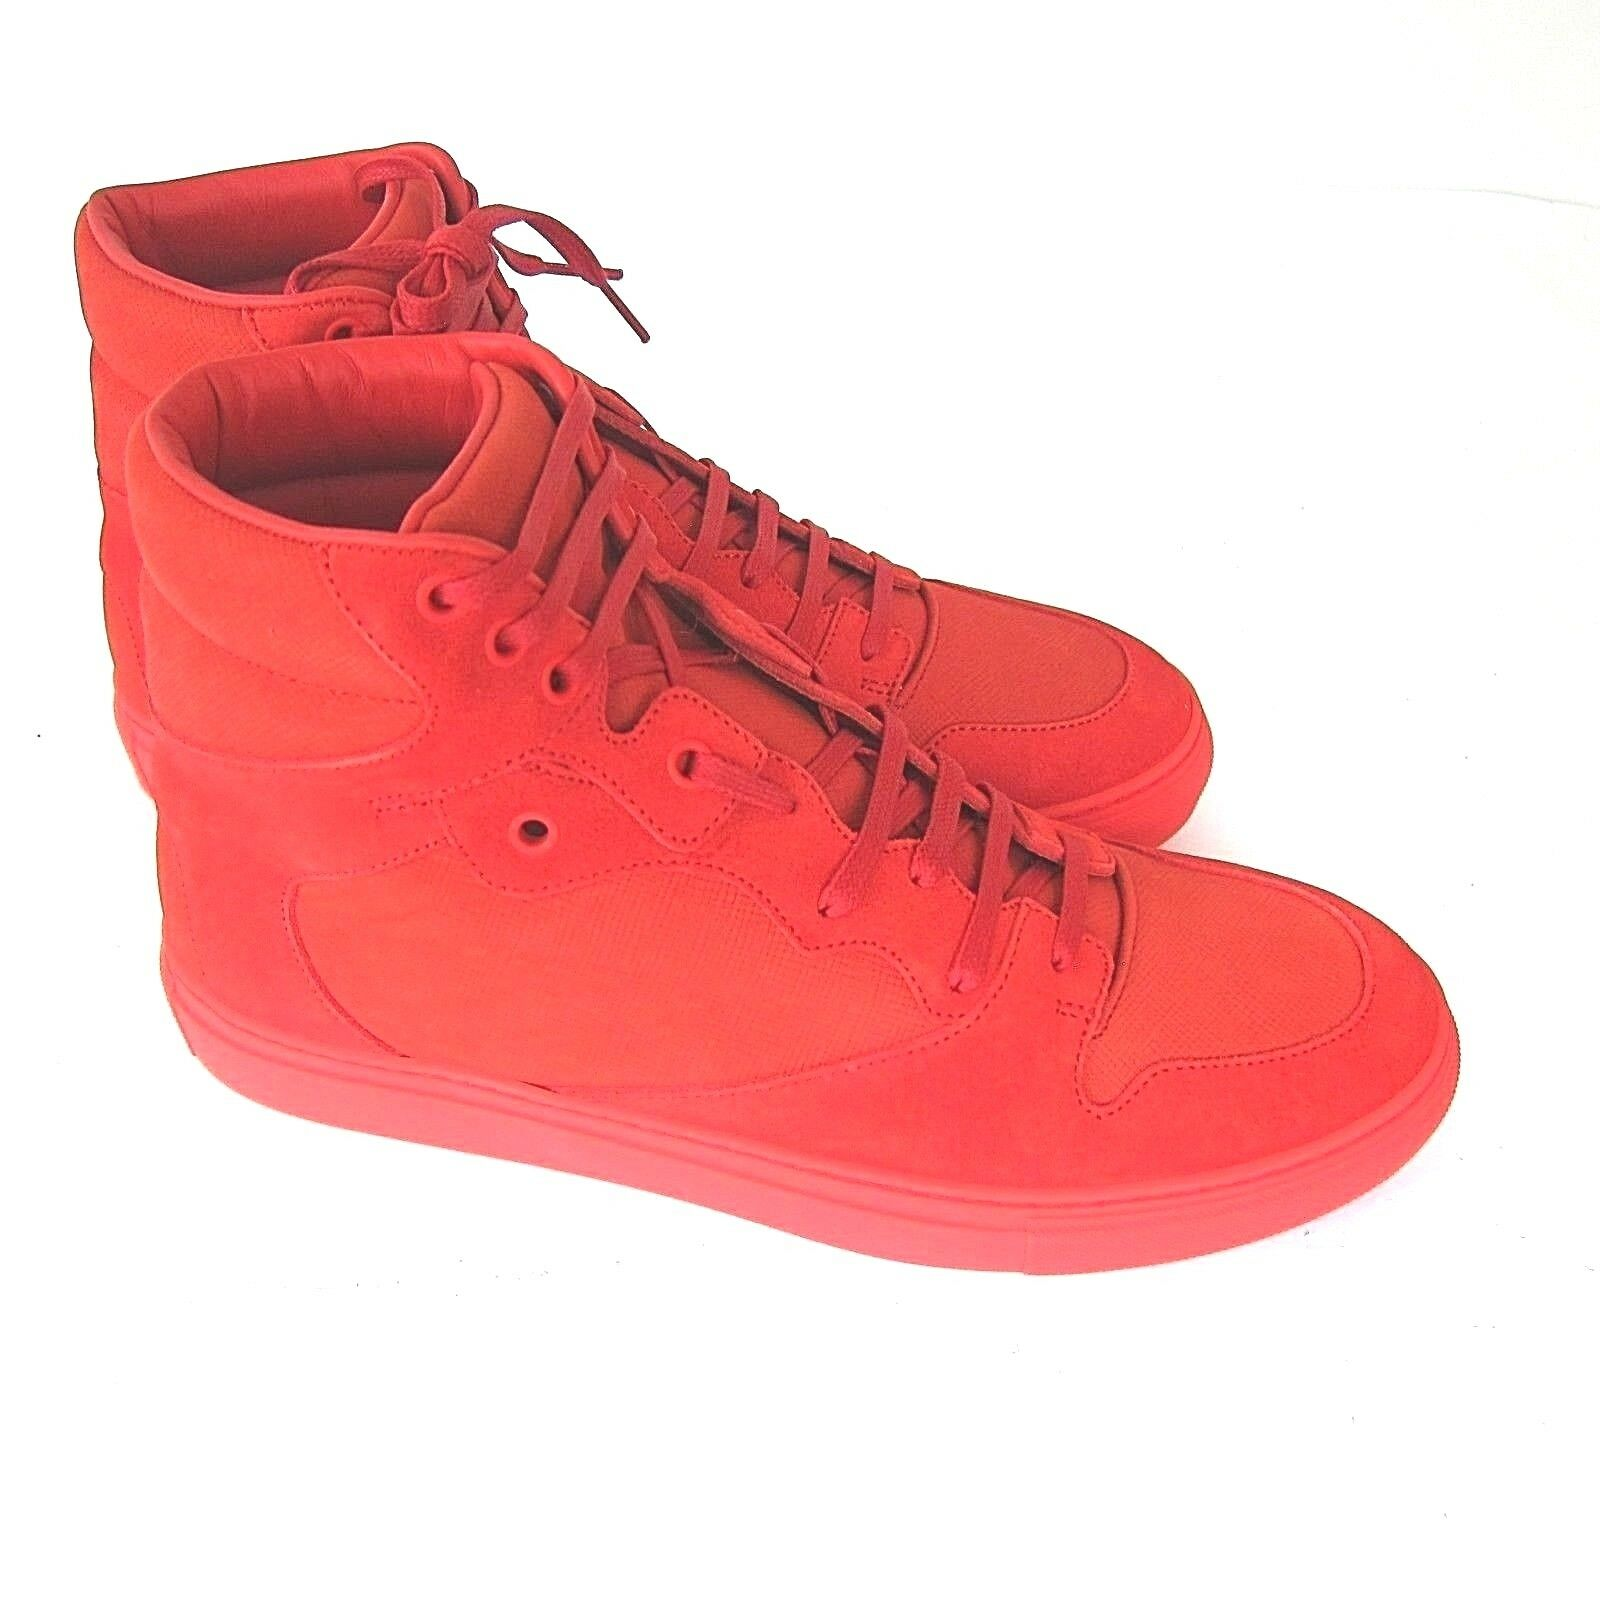 J-3359124 New Balenciaga Red Pelle  Shoes   9 Marked 42